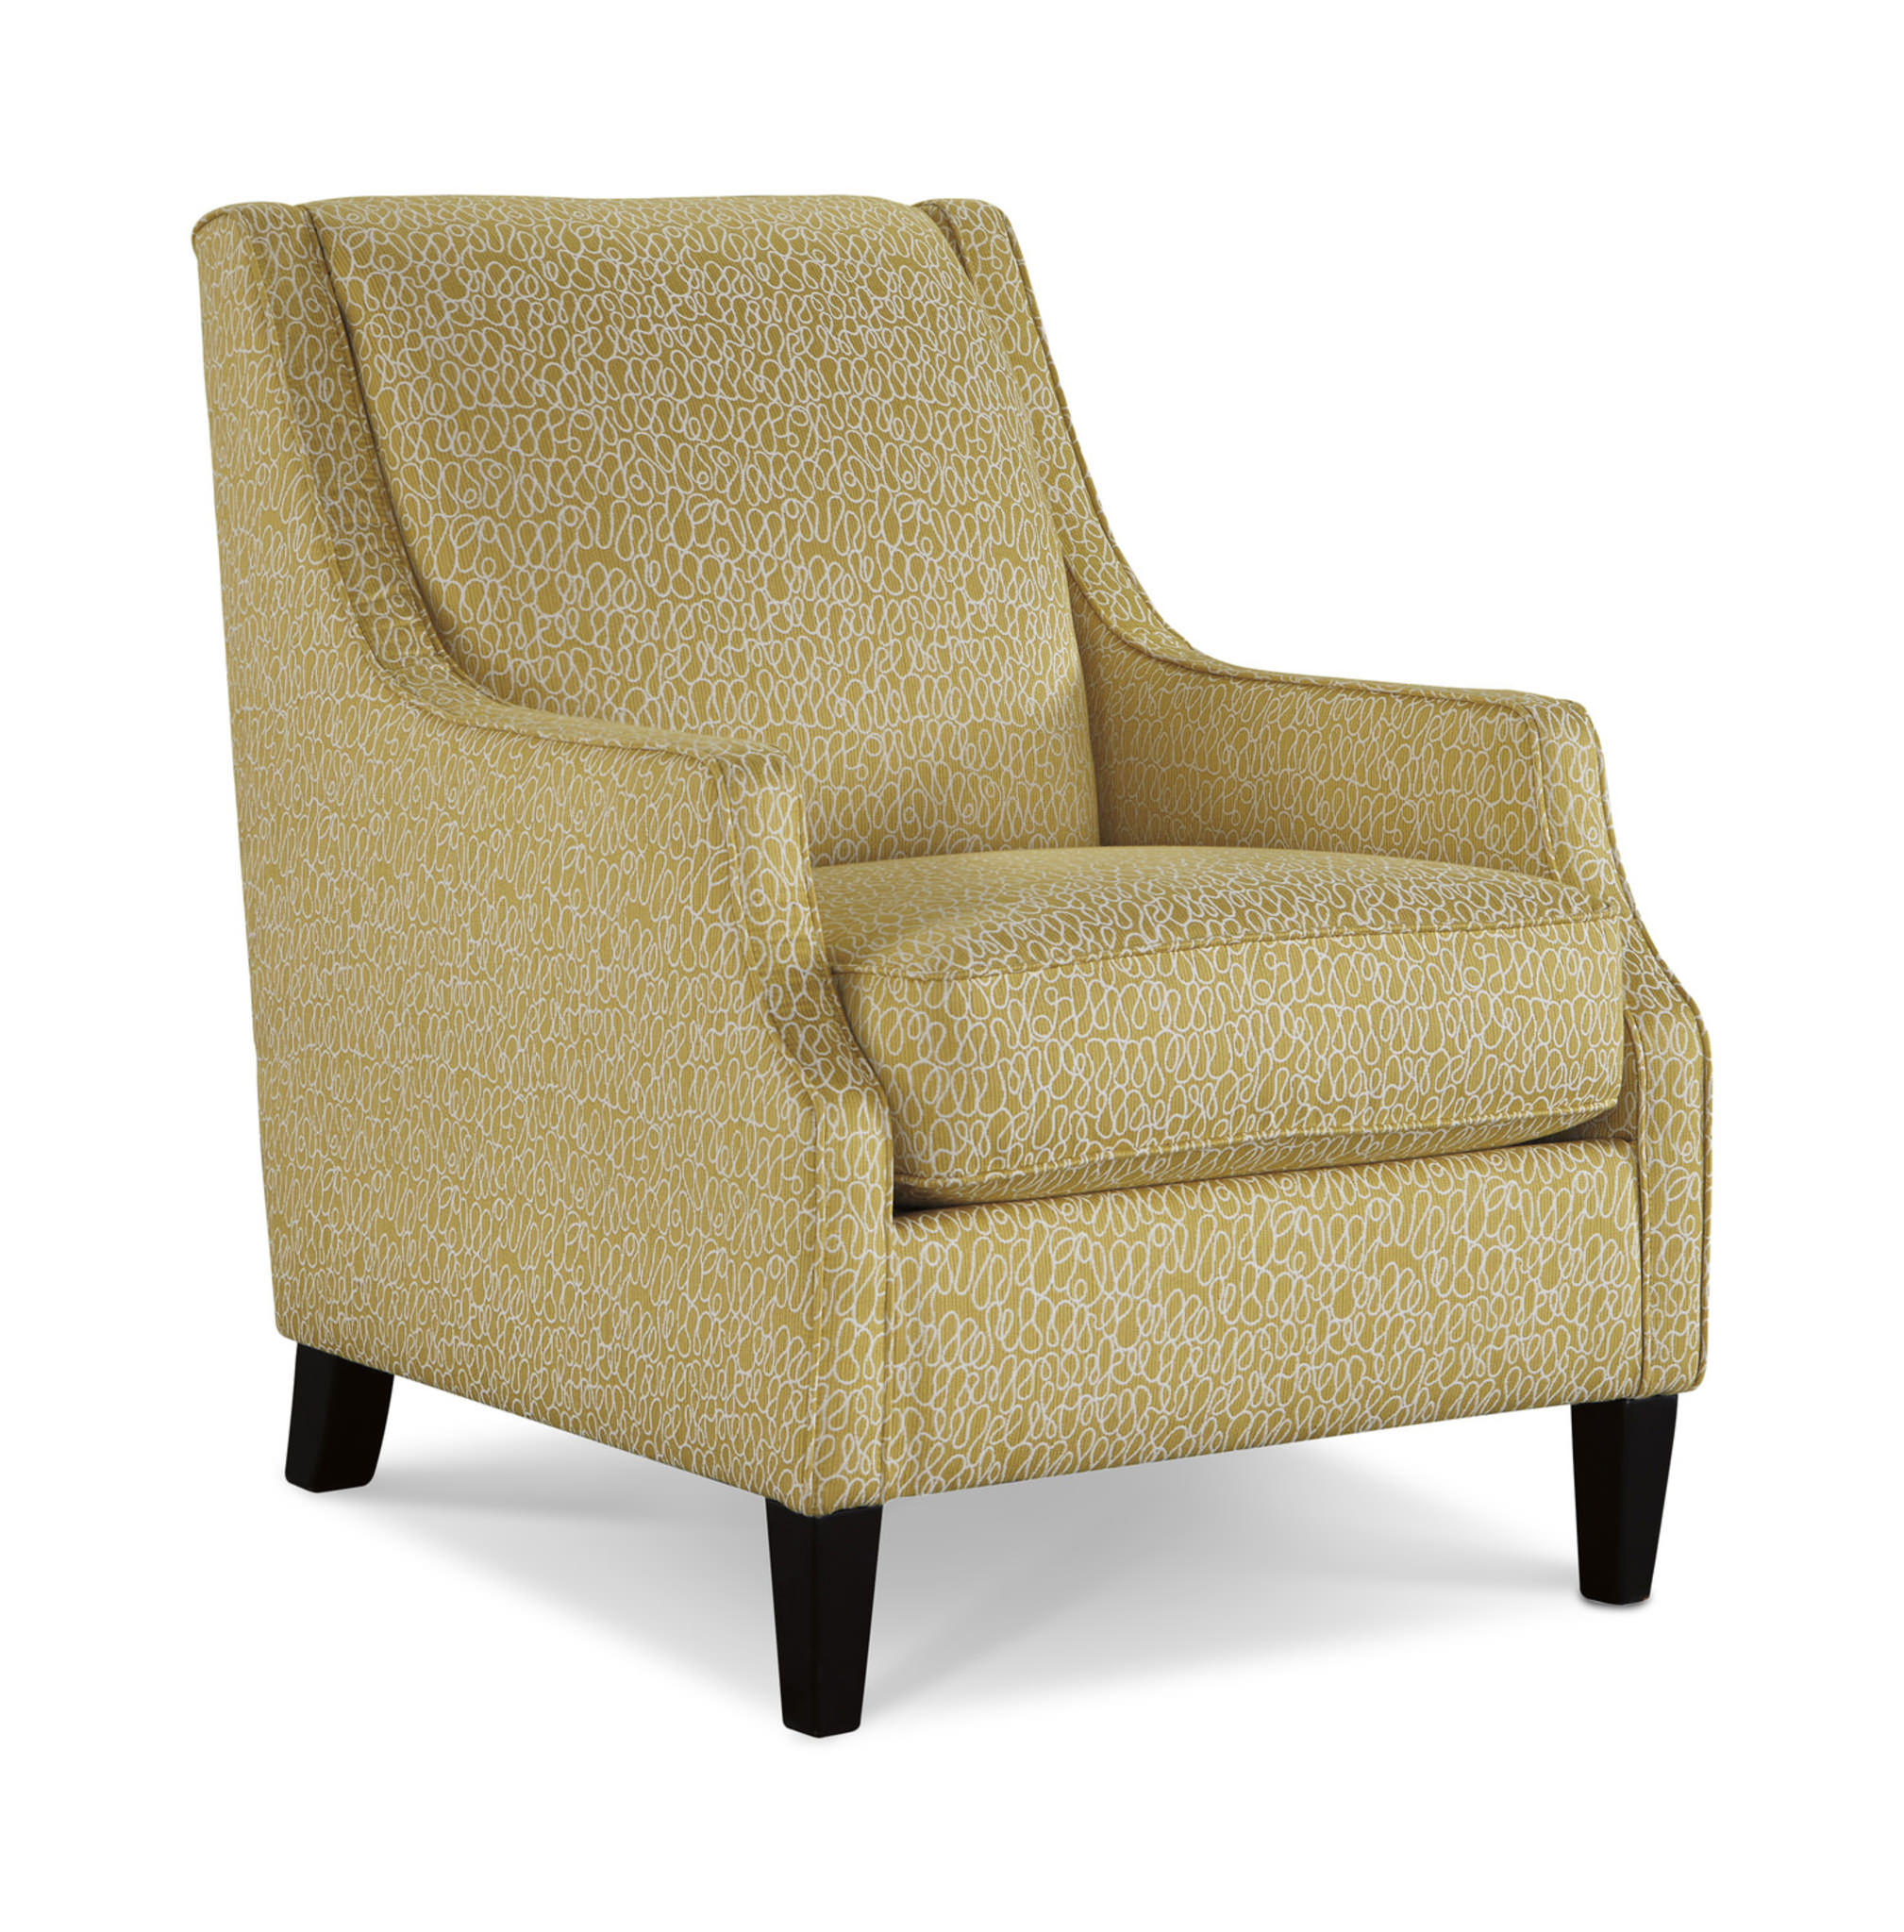 A Bright Accent Chair Can Add Visual Interest In Your E